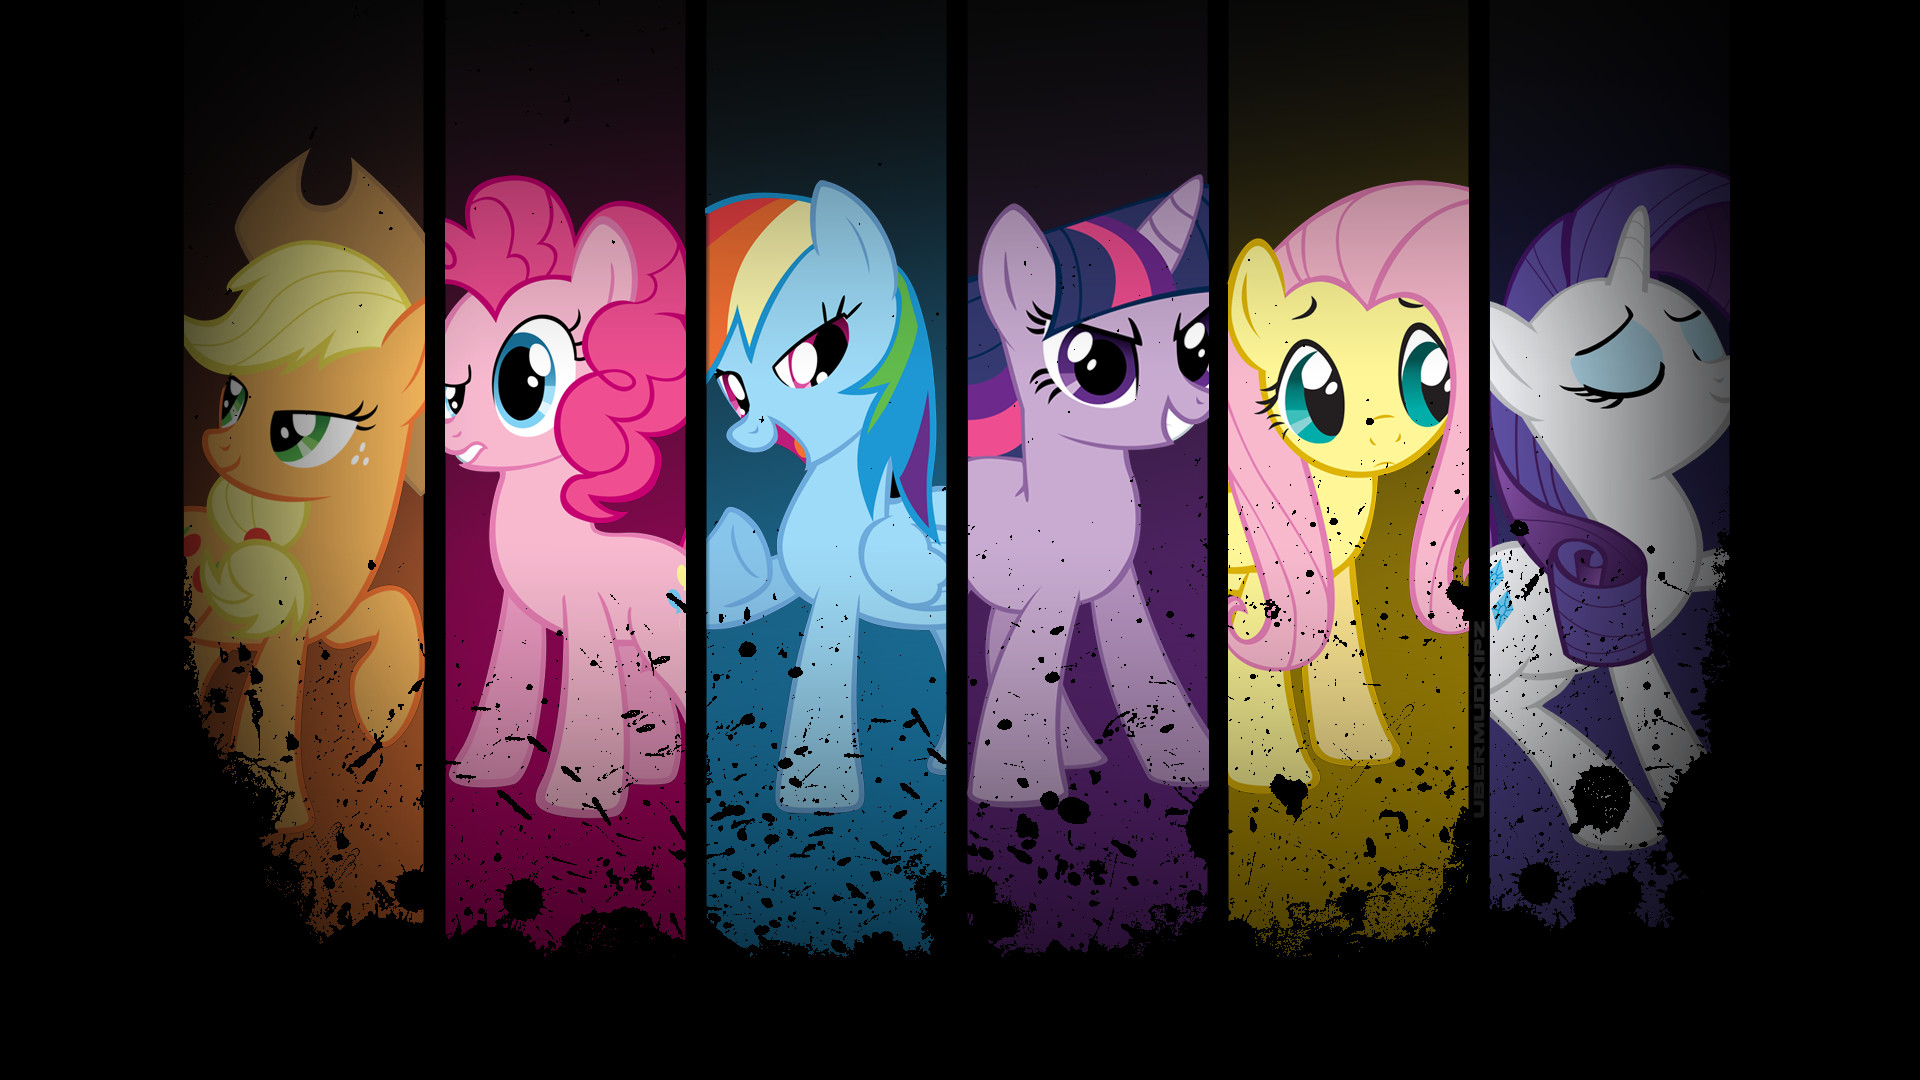 1920x1080 Download V.44 - My Little Pony, GuoGuiyan Backgrounds